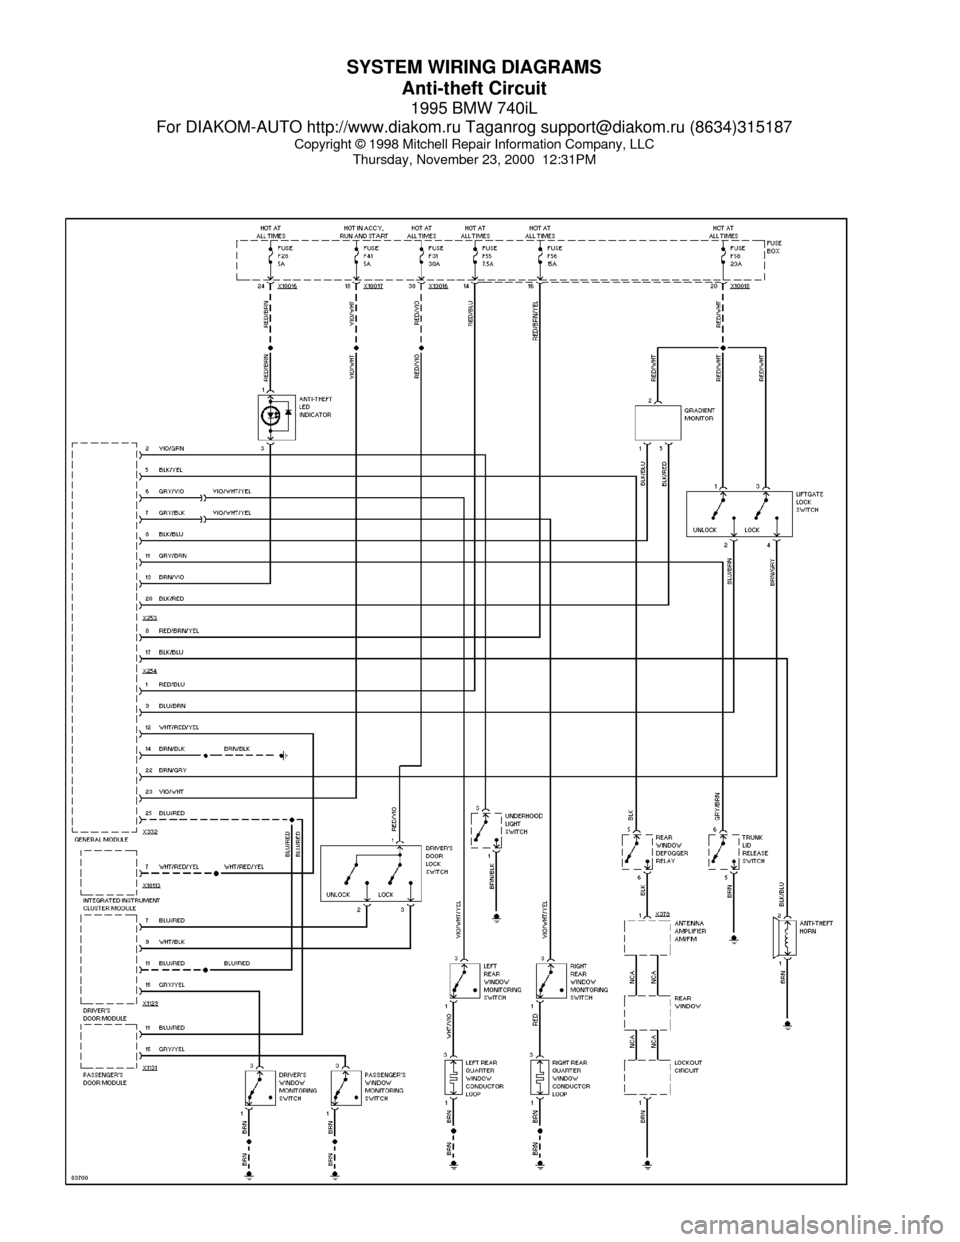 w960_2820-9 Understanding Bmw Wiring Diagrams on understanding engineering drawings, understanding ladder diagrams, understanding foundation diagrams, electronic circuit diagrams, understanding circuits diagrams, understanding electrical diagrams, understanding schematic diagrams, understanding transformer diagrams, pinout diagrams,